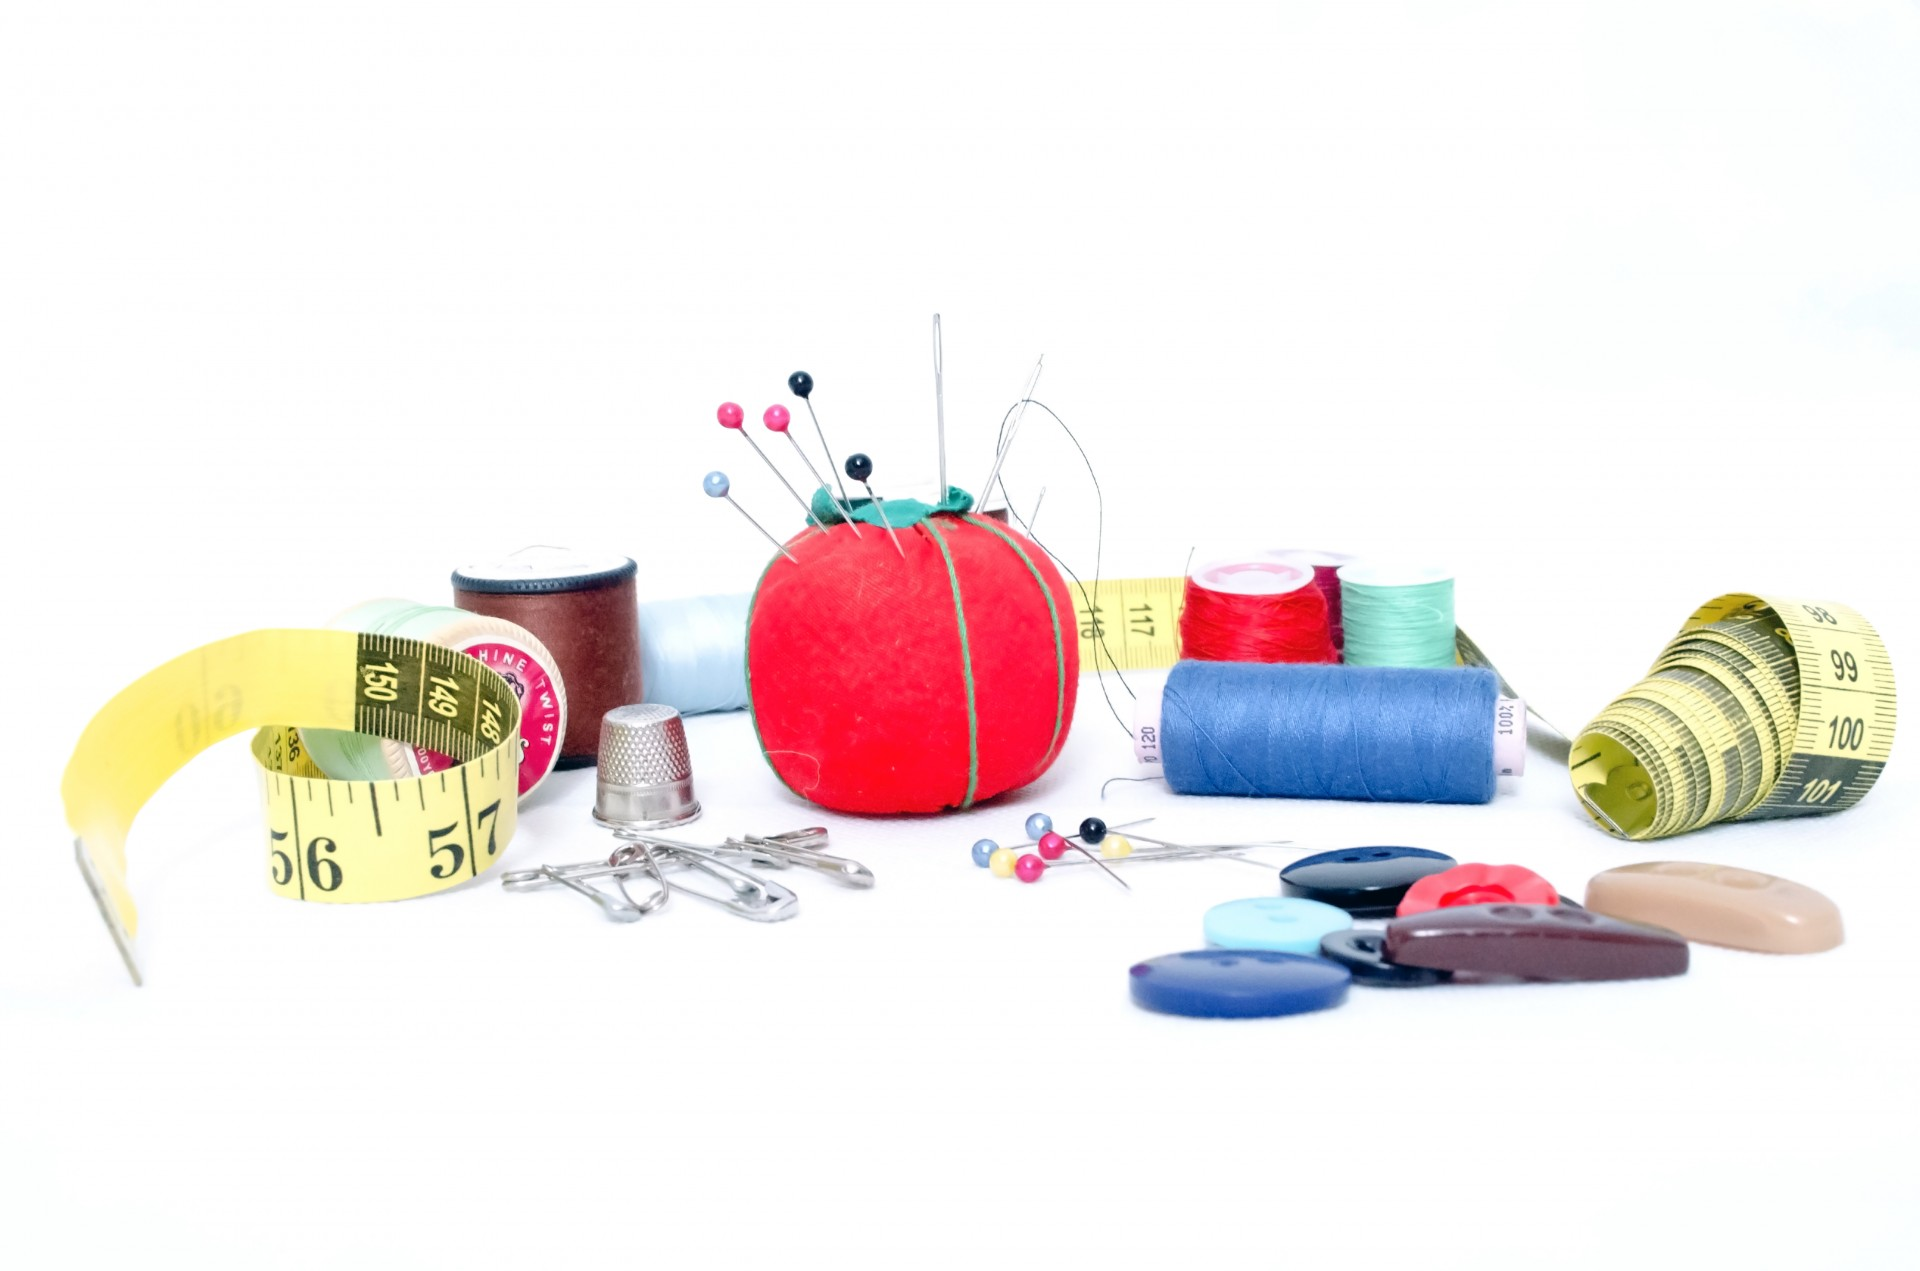 21 Sewing Business Ideas to Start From Home